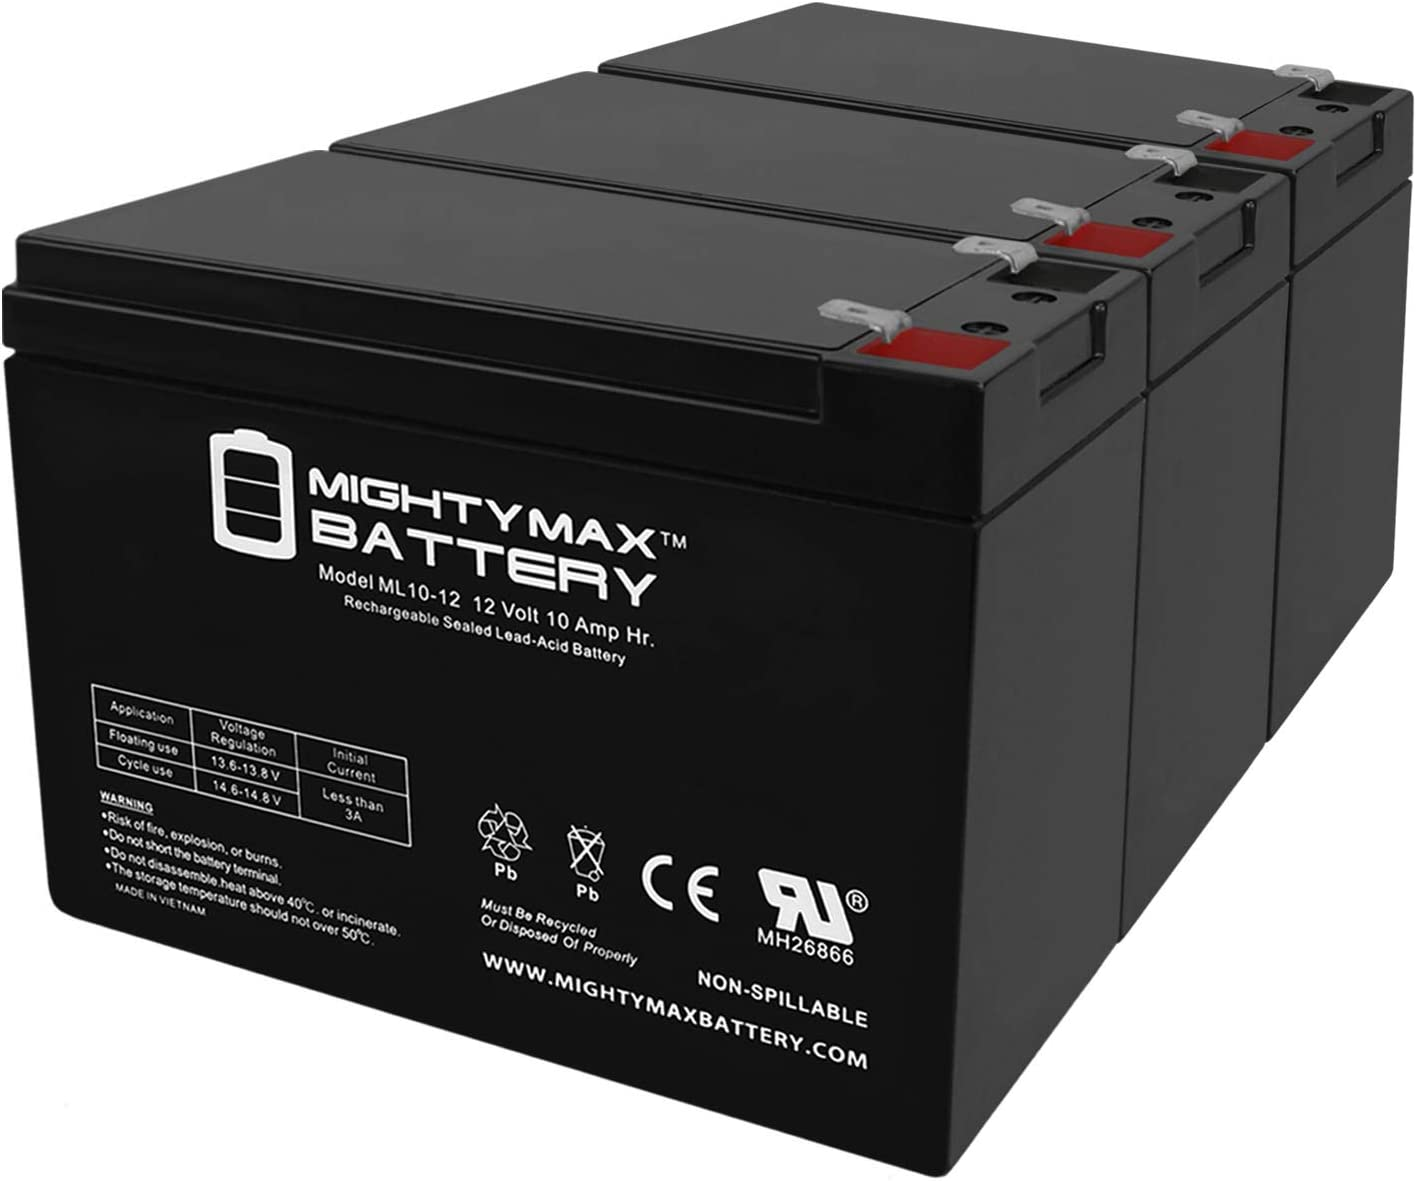 Mighty Max Battery Mail order ML10-12 - Scooter Enduri 12V Cheap mail order sales for 10AH